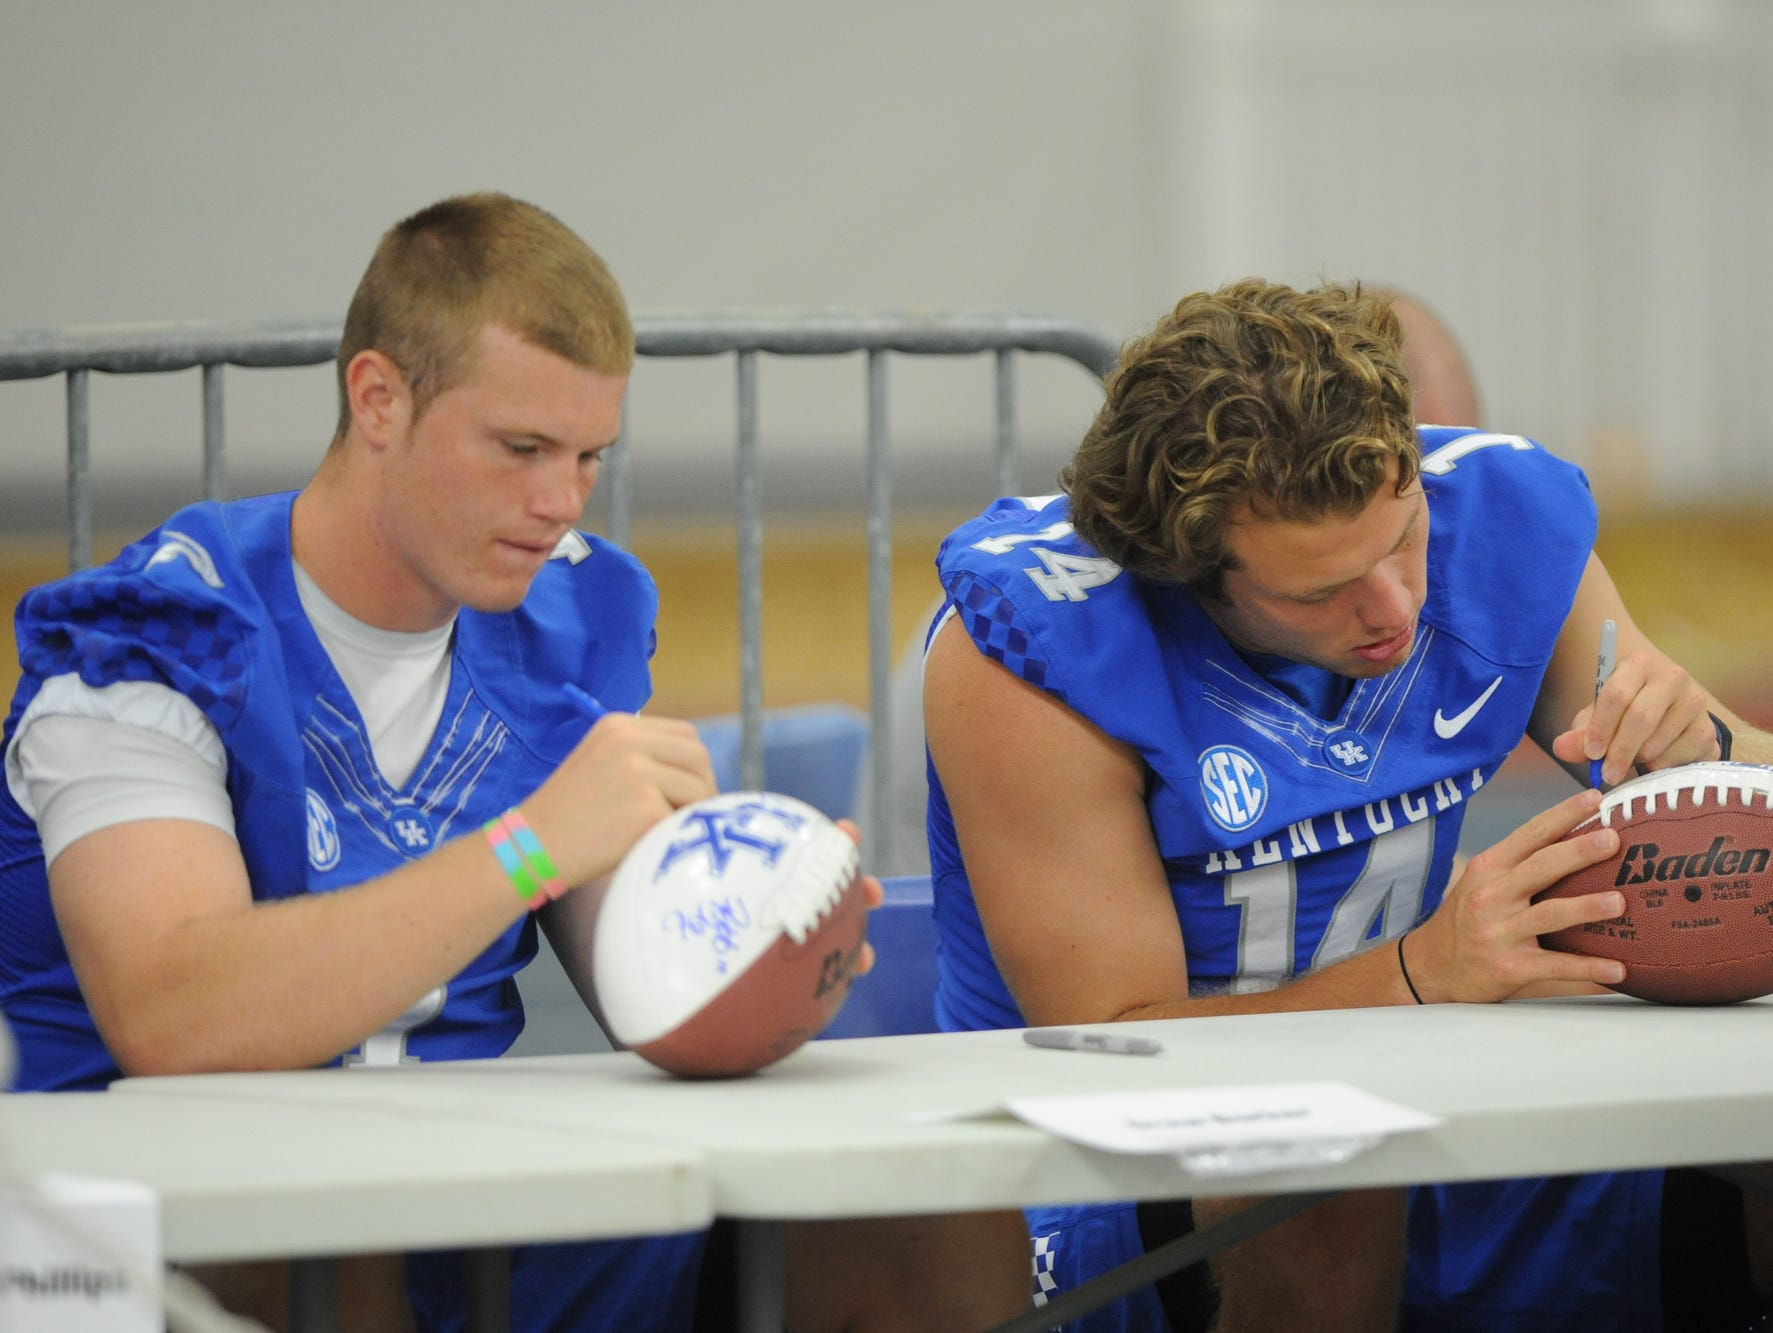 Redshirt freshman QB Drew Barker and junior QB Patrick Towles autograph footballs during the University of Kentucky Football fan day at the Nutter Field House in Lexington, Ky., on Saturday August 8, 2015.